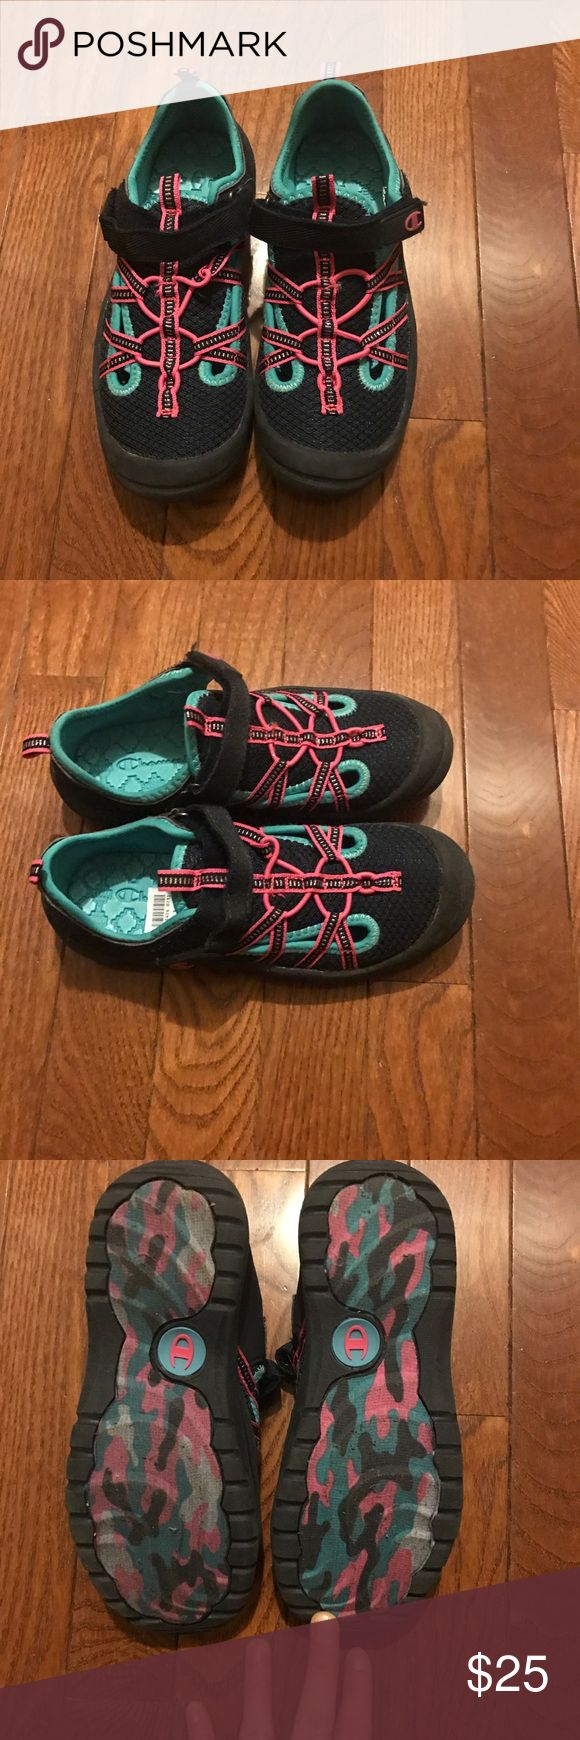 New (no Box) Girls Tennis Shoes New (no Box) Girls Tennis Shoes Size: 1 Comes From a Smoke and Pet Free Home Champion Shoes Sneakers